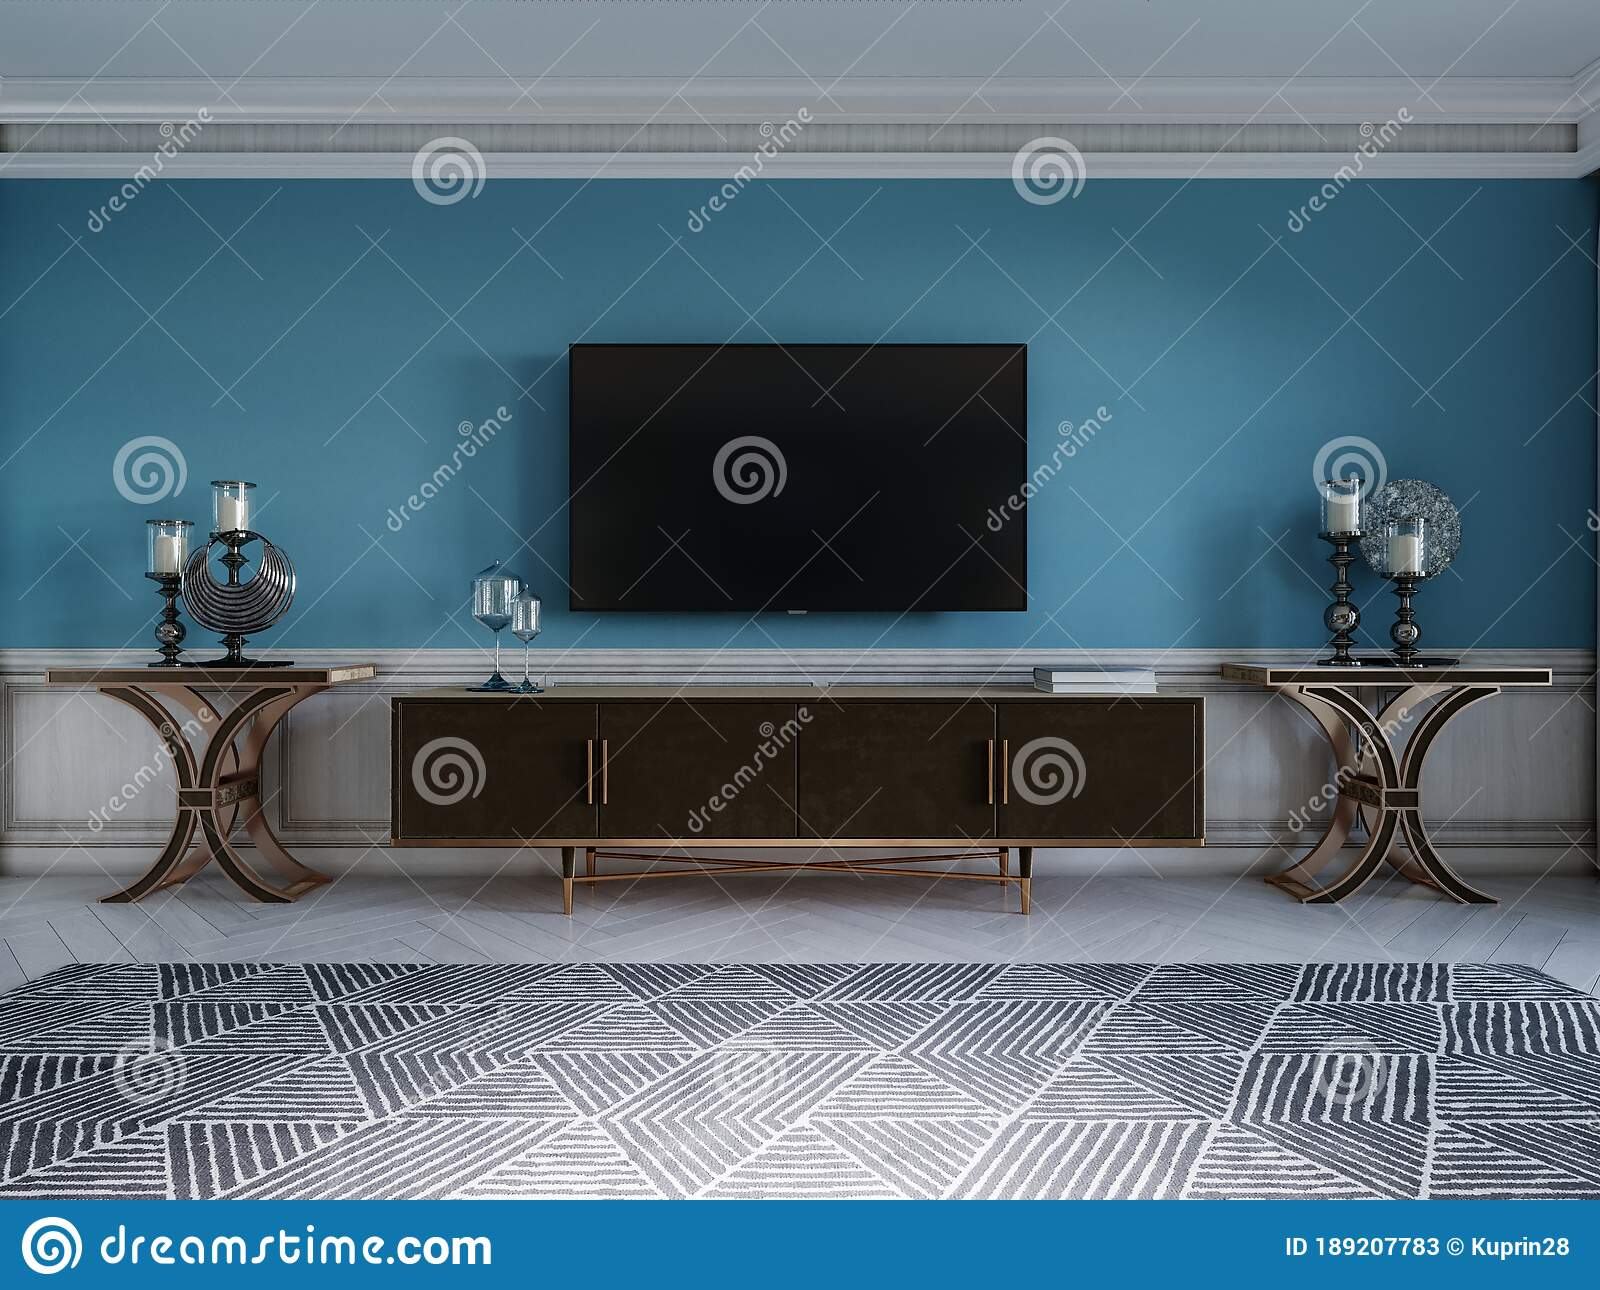 Tv Unit Tv Set In A Modern Living Room In A Classic Style With Blue Walls Black Tv Cabinet Console Table With Interior Decor Stock Illustration Illustration Of Lifestyle Decor 189207783